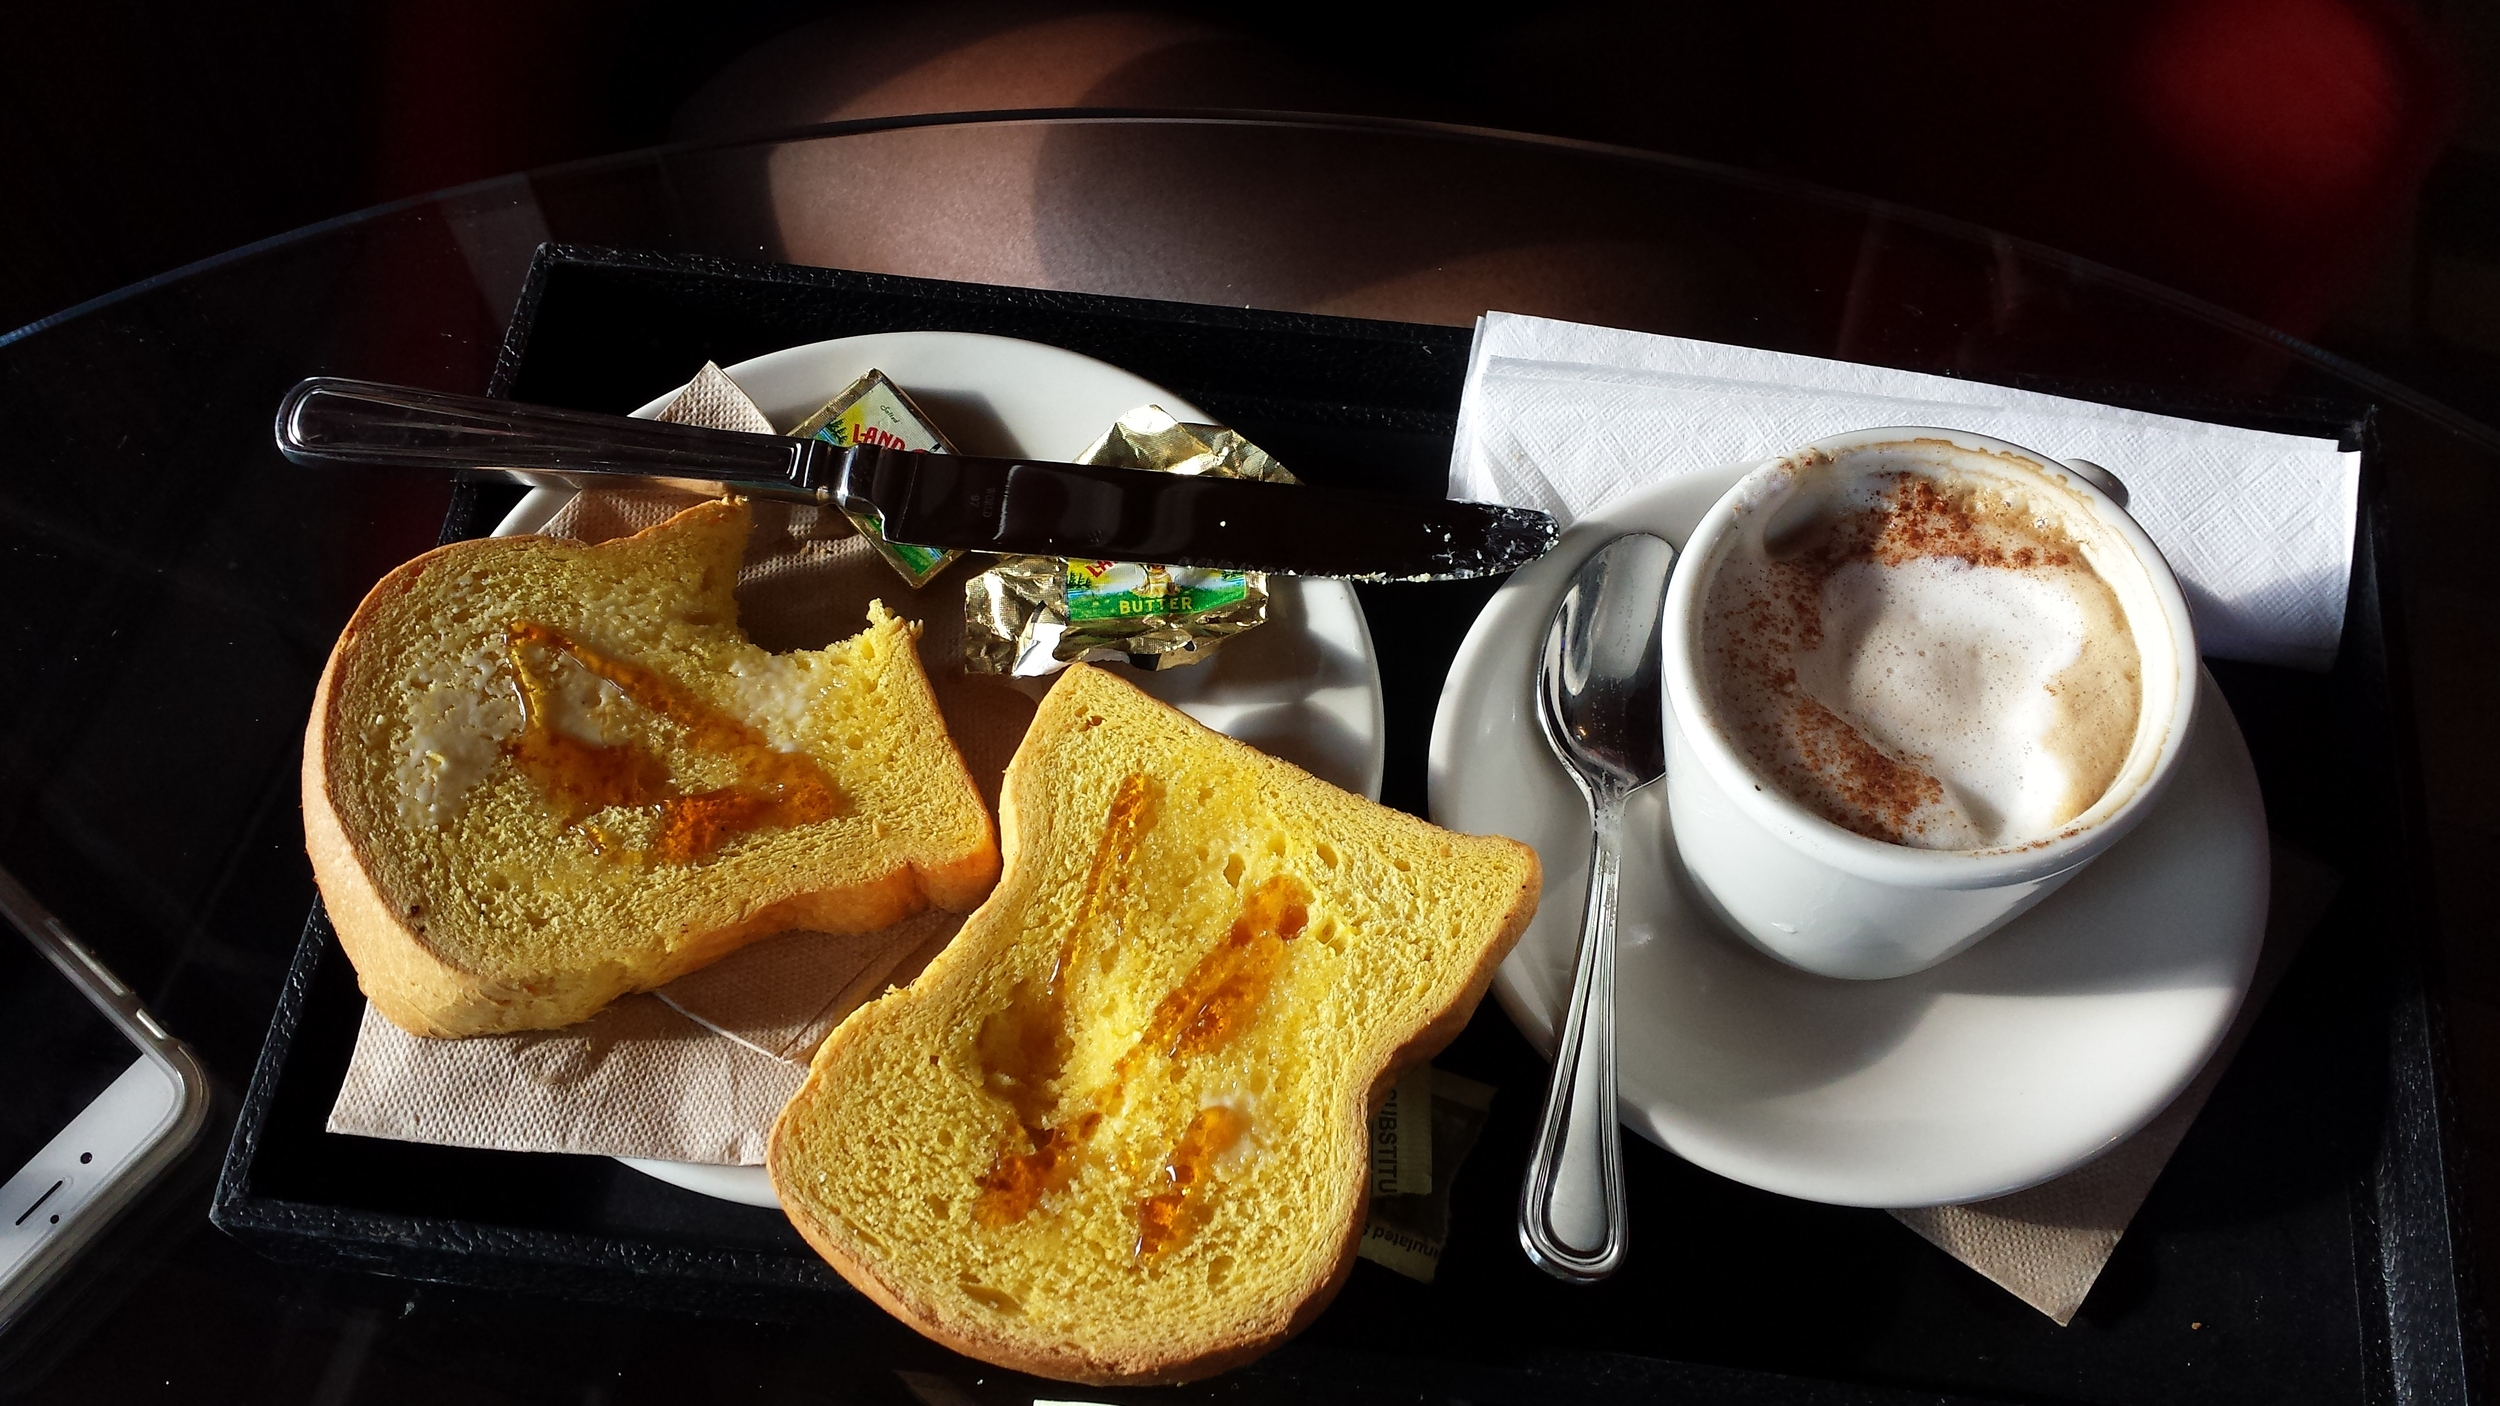 Texas toast with honey and latte.